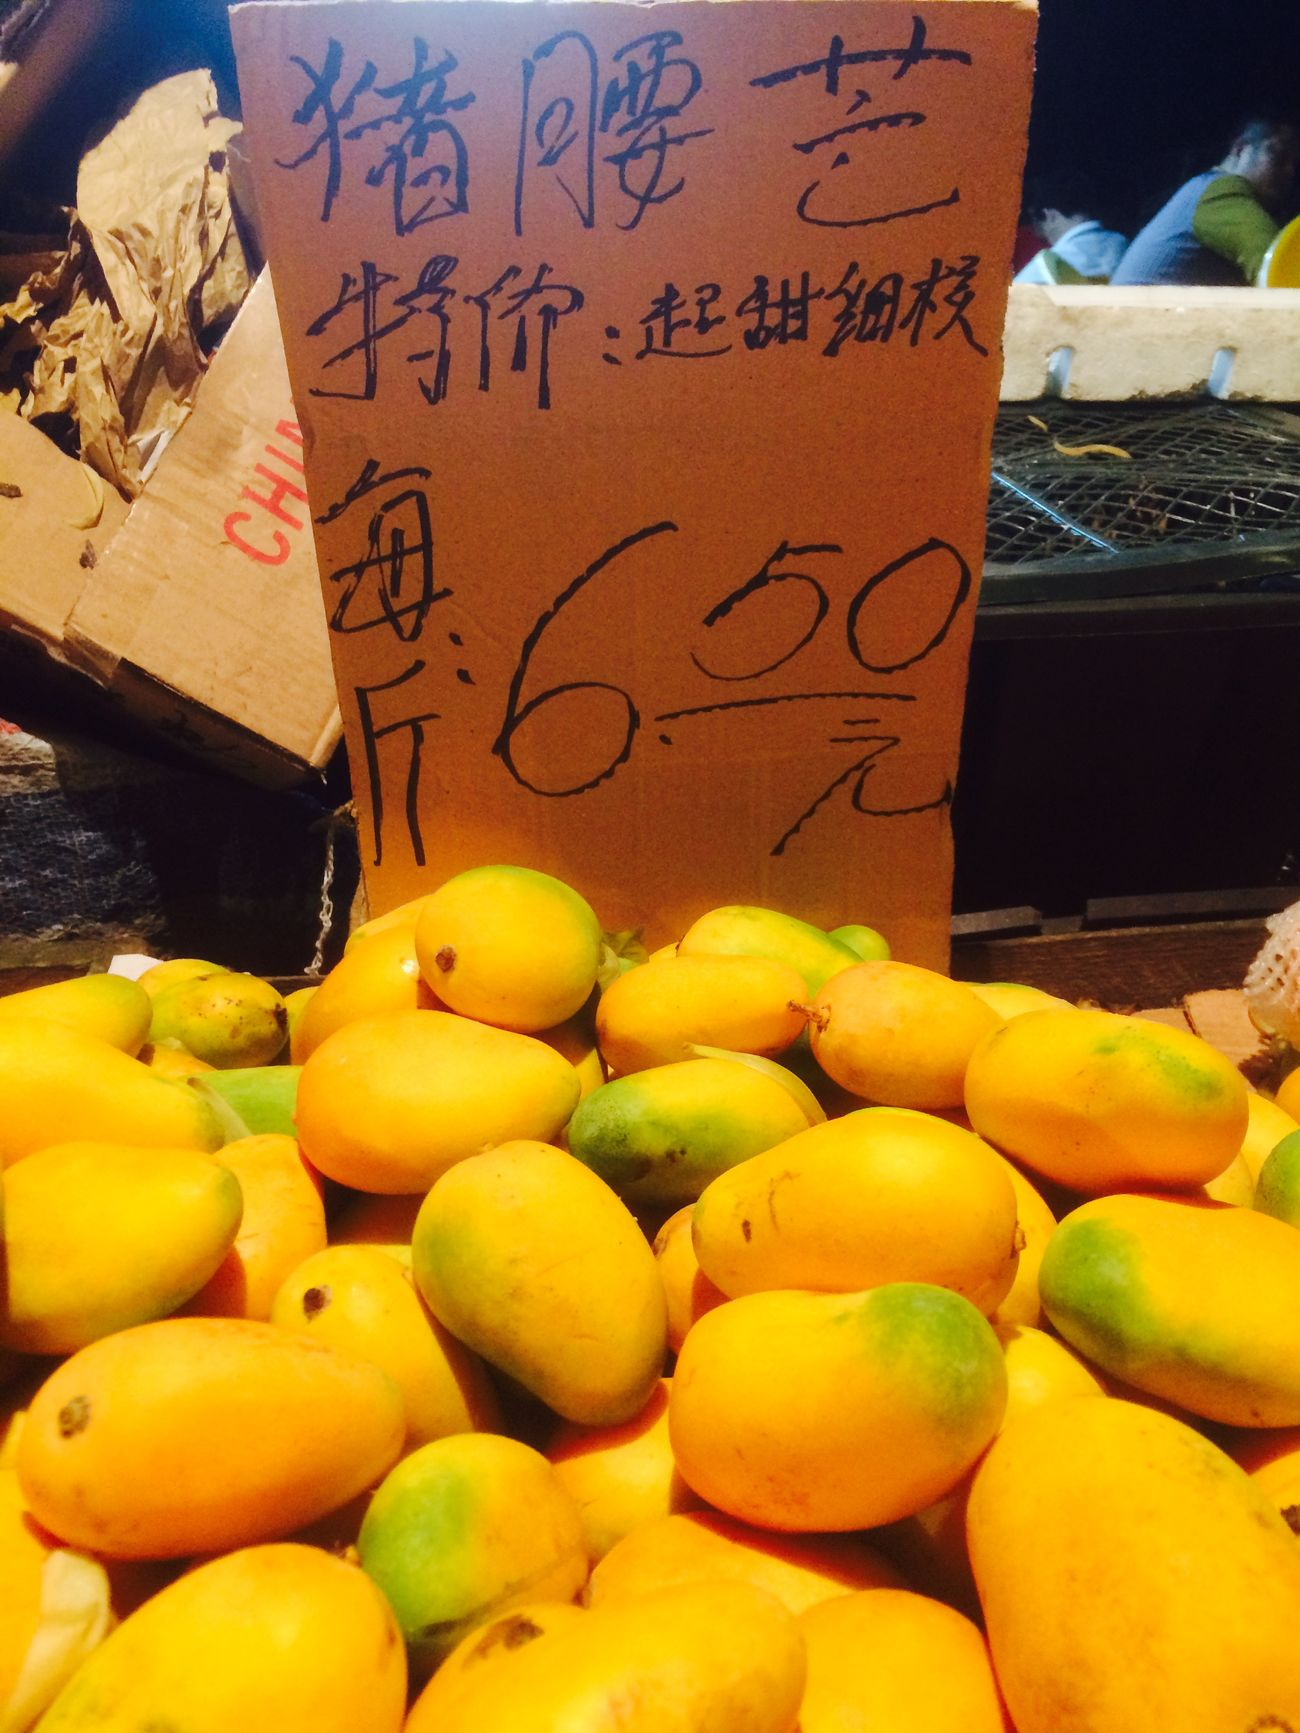 Kidney mango, super sweet & small stone, 6.5CN¥/500g. @Guangzhou 1537 Streetphotography Price